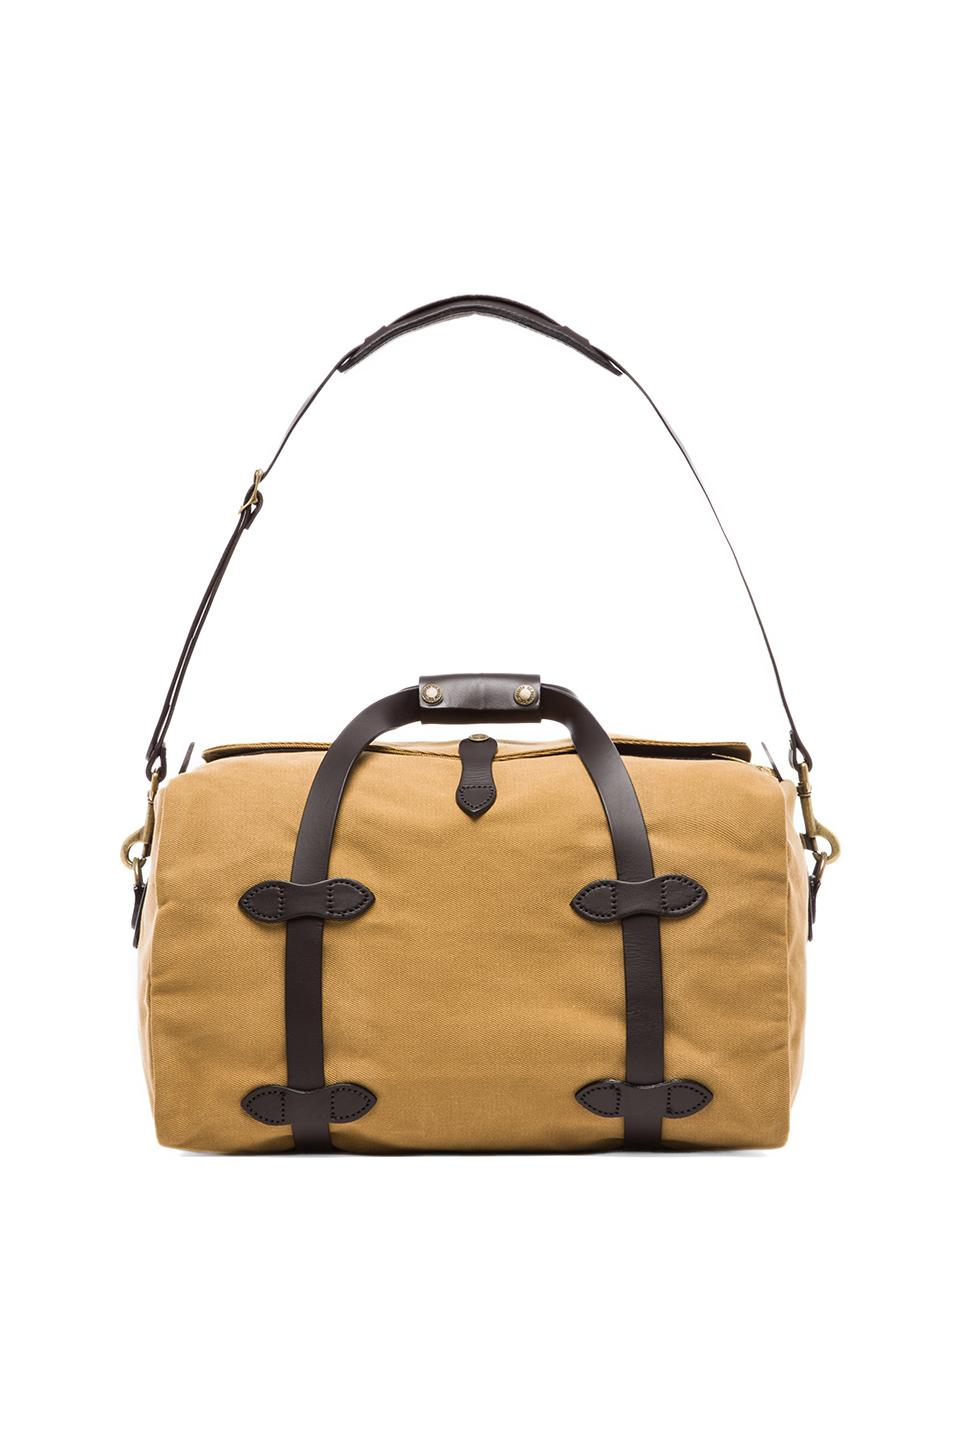 Filson Small Duffle in Tan